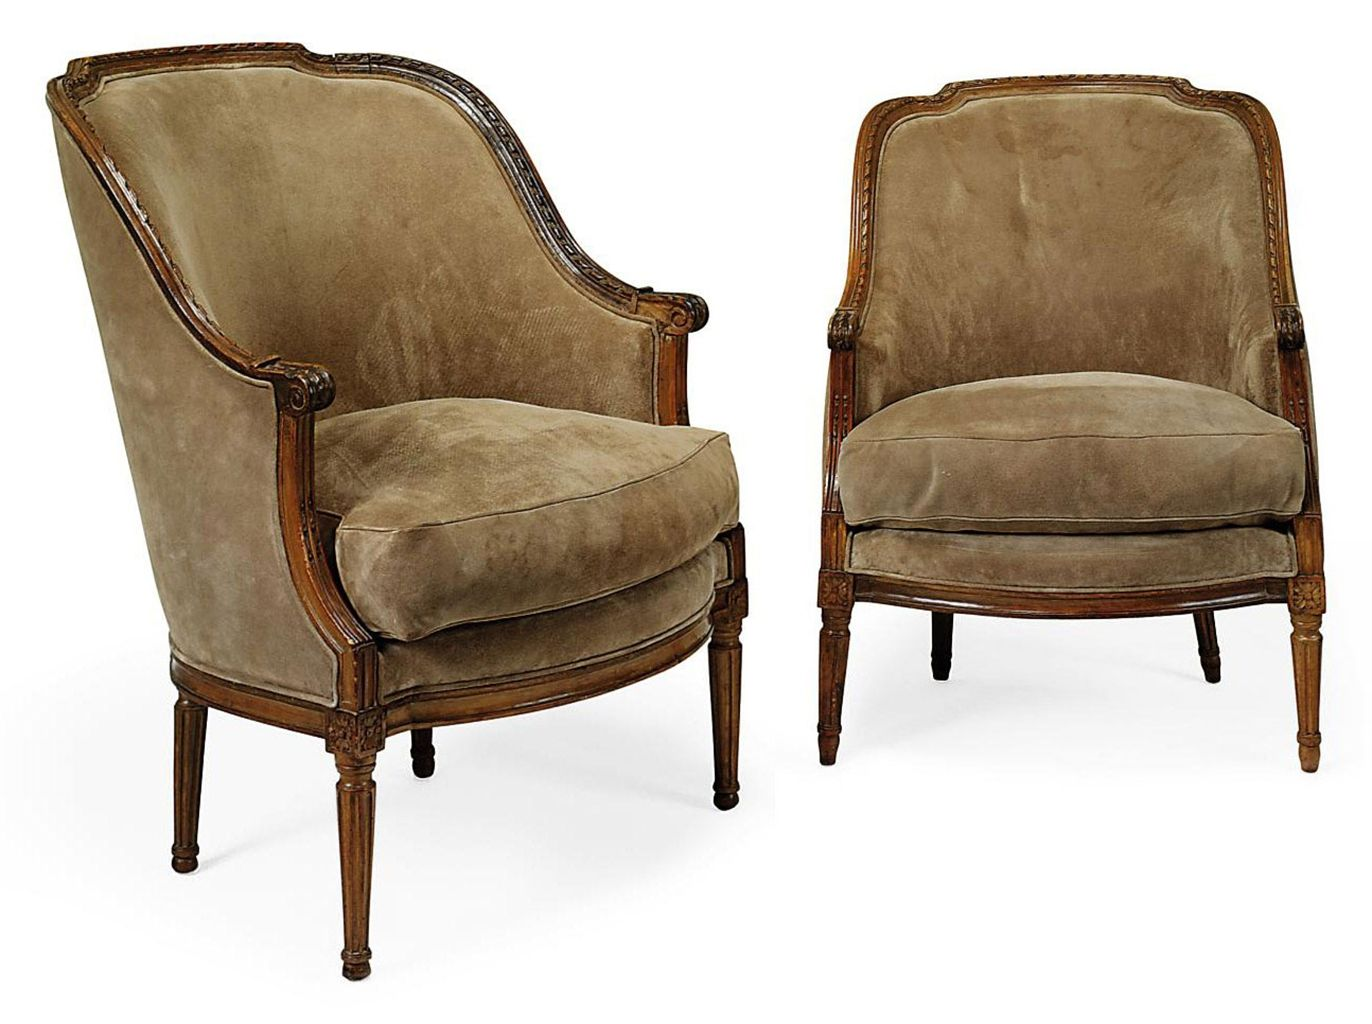 Meuble Bergère A Pair Of Louis Xvi Walnut Bergeres By J B Boulard Circa